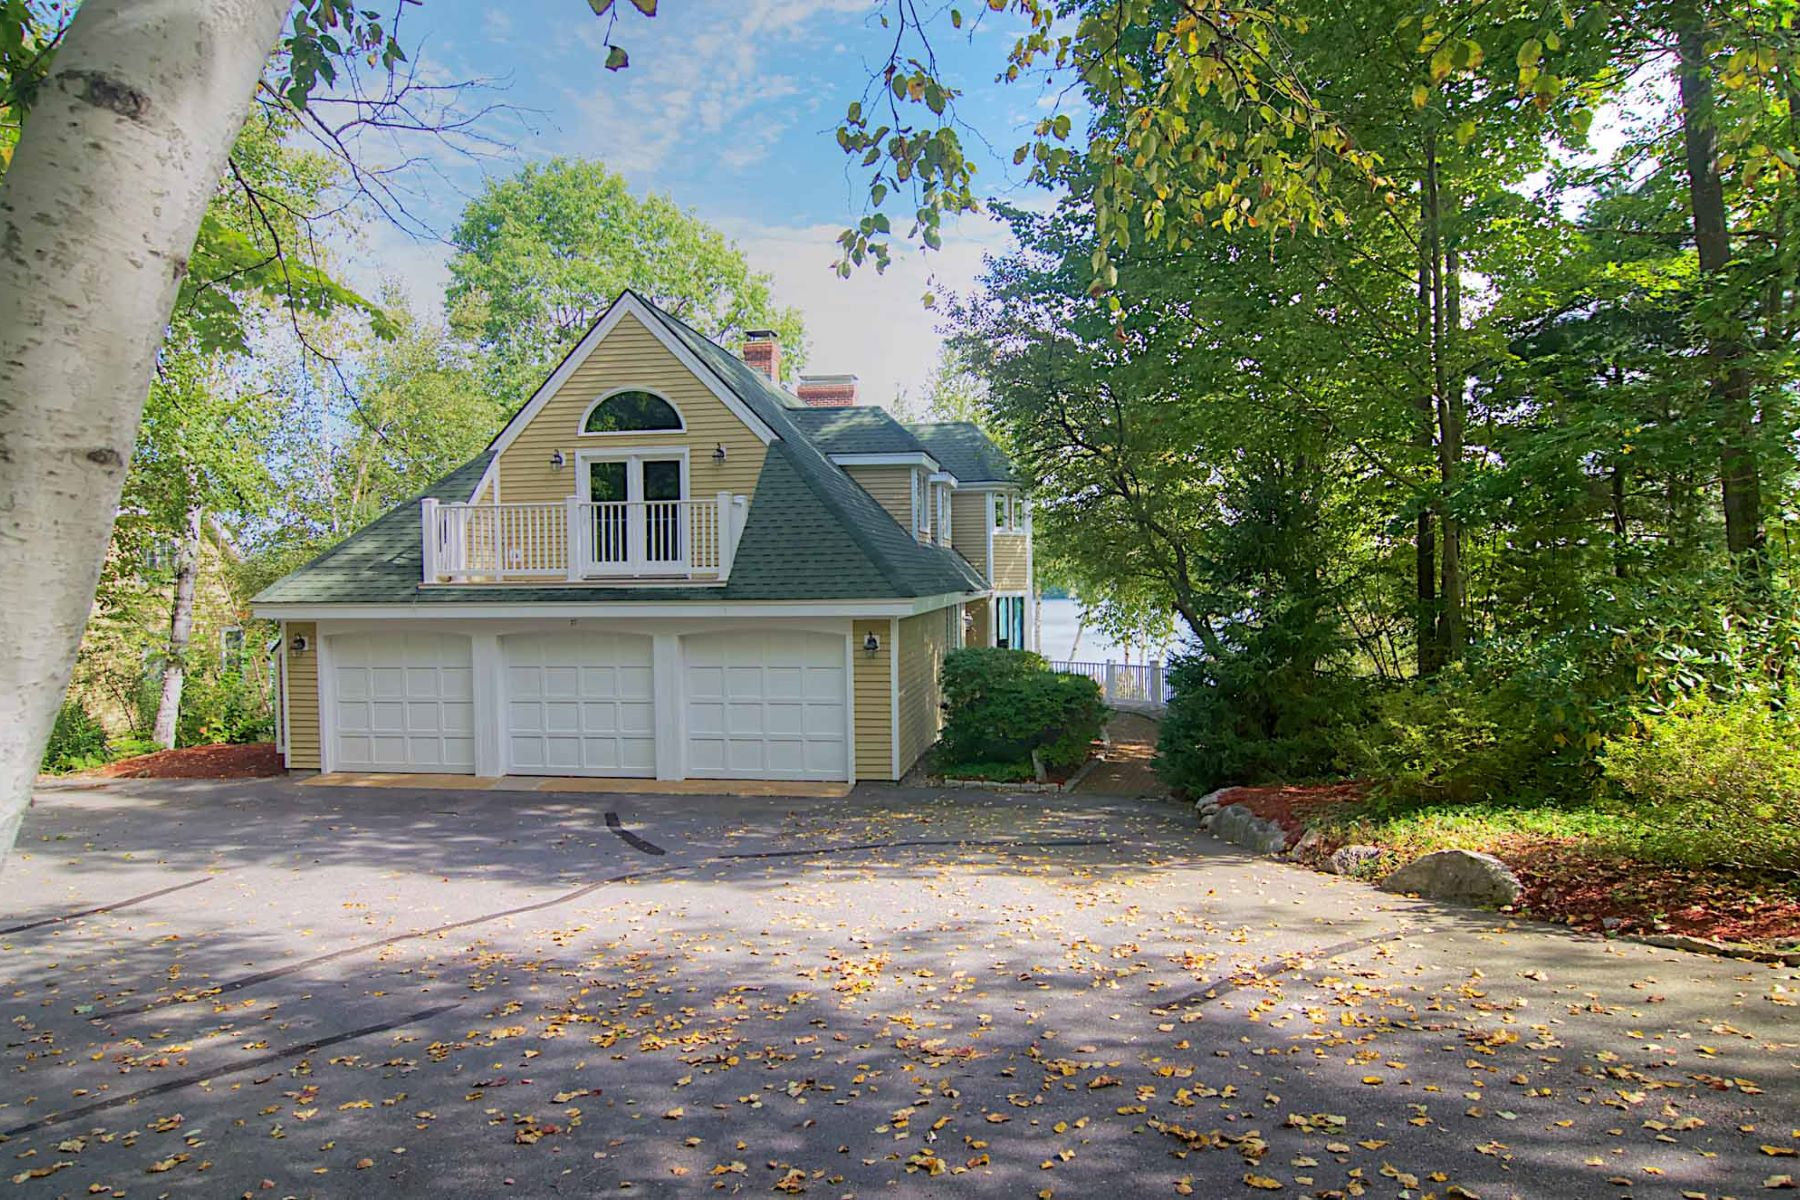 Single Family Home for Sale at Grouse Point Club on Lake Winnipesaukee 27 Grouse Hollow Meredith, New Hampshire, 03253 United States